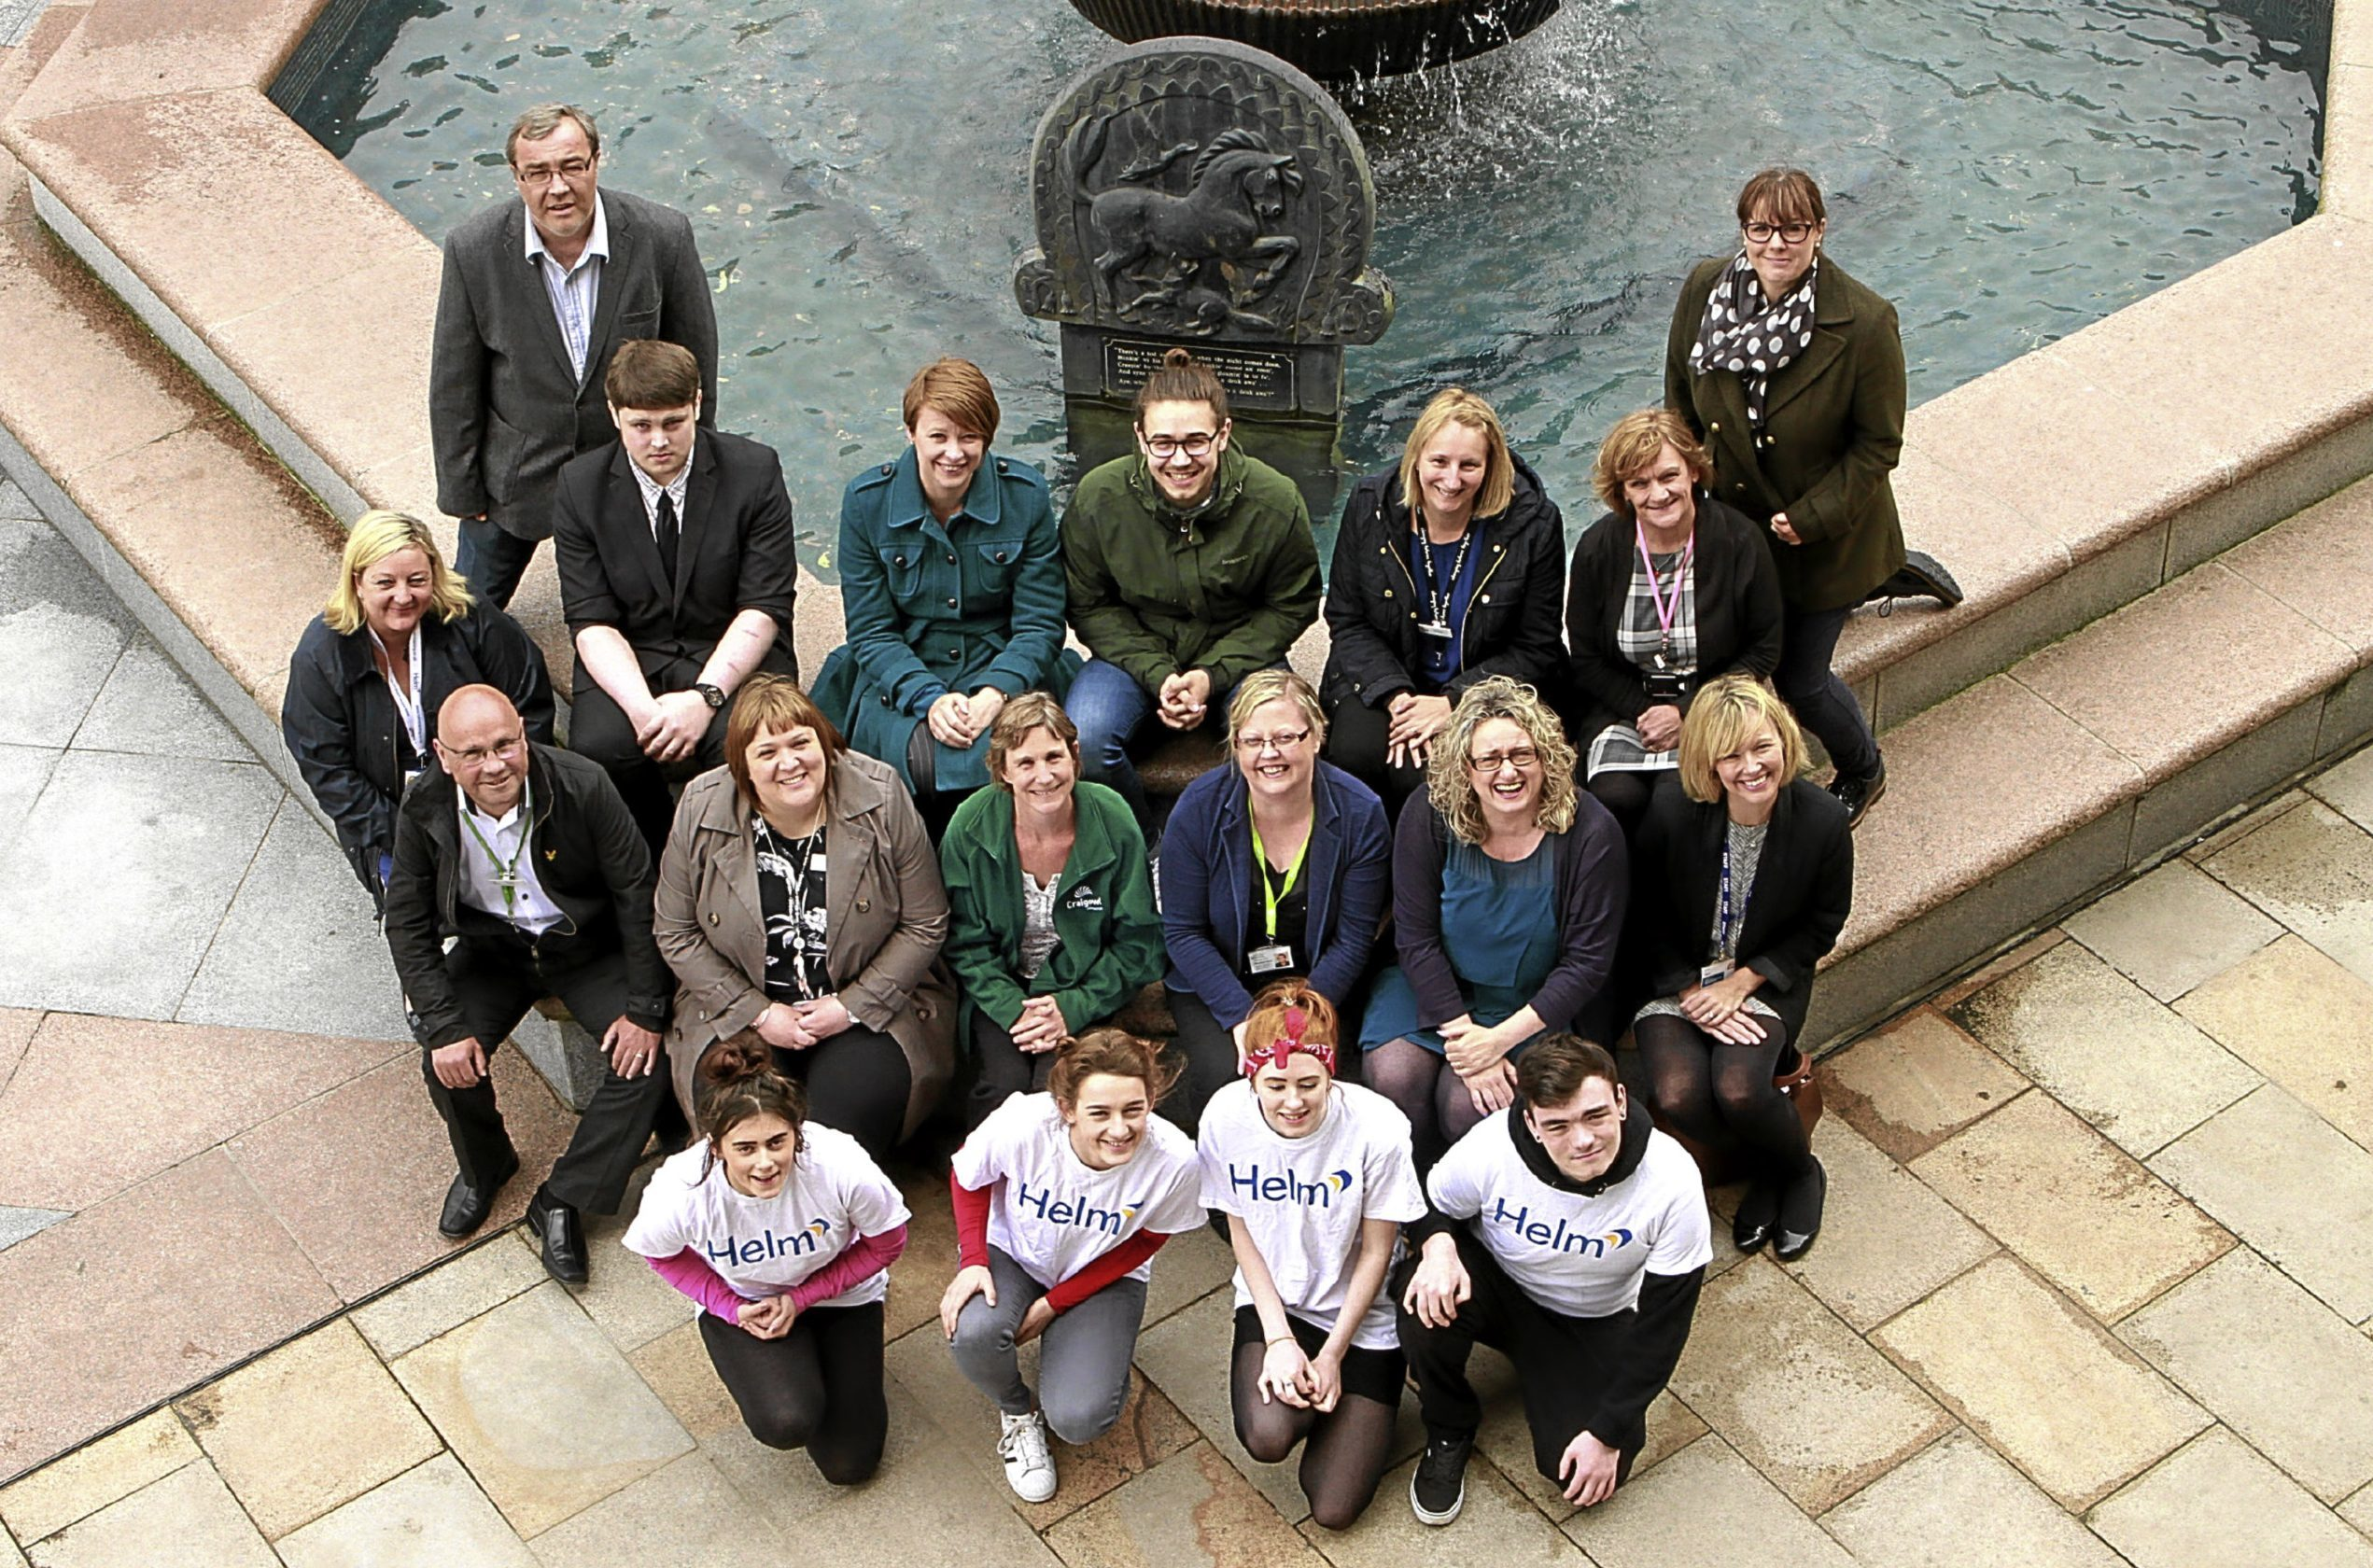 A team photo of partners involved in the Tele's campaign.